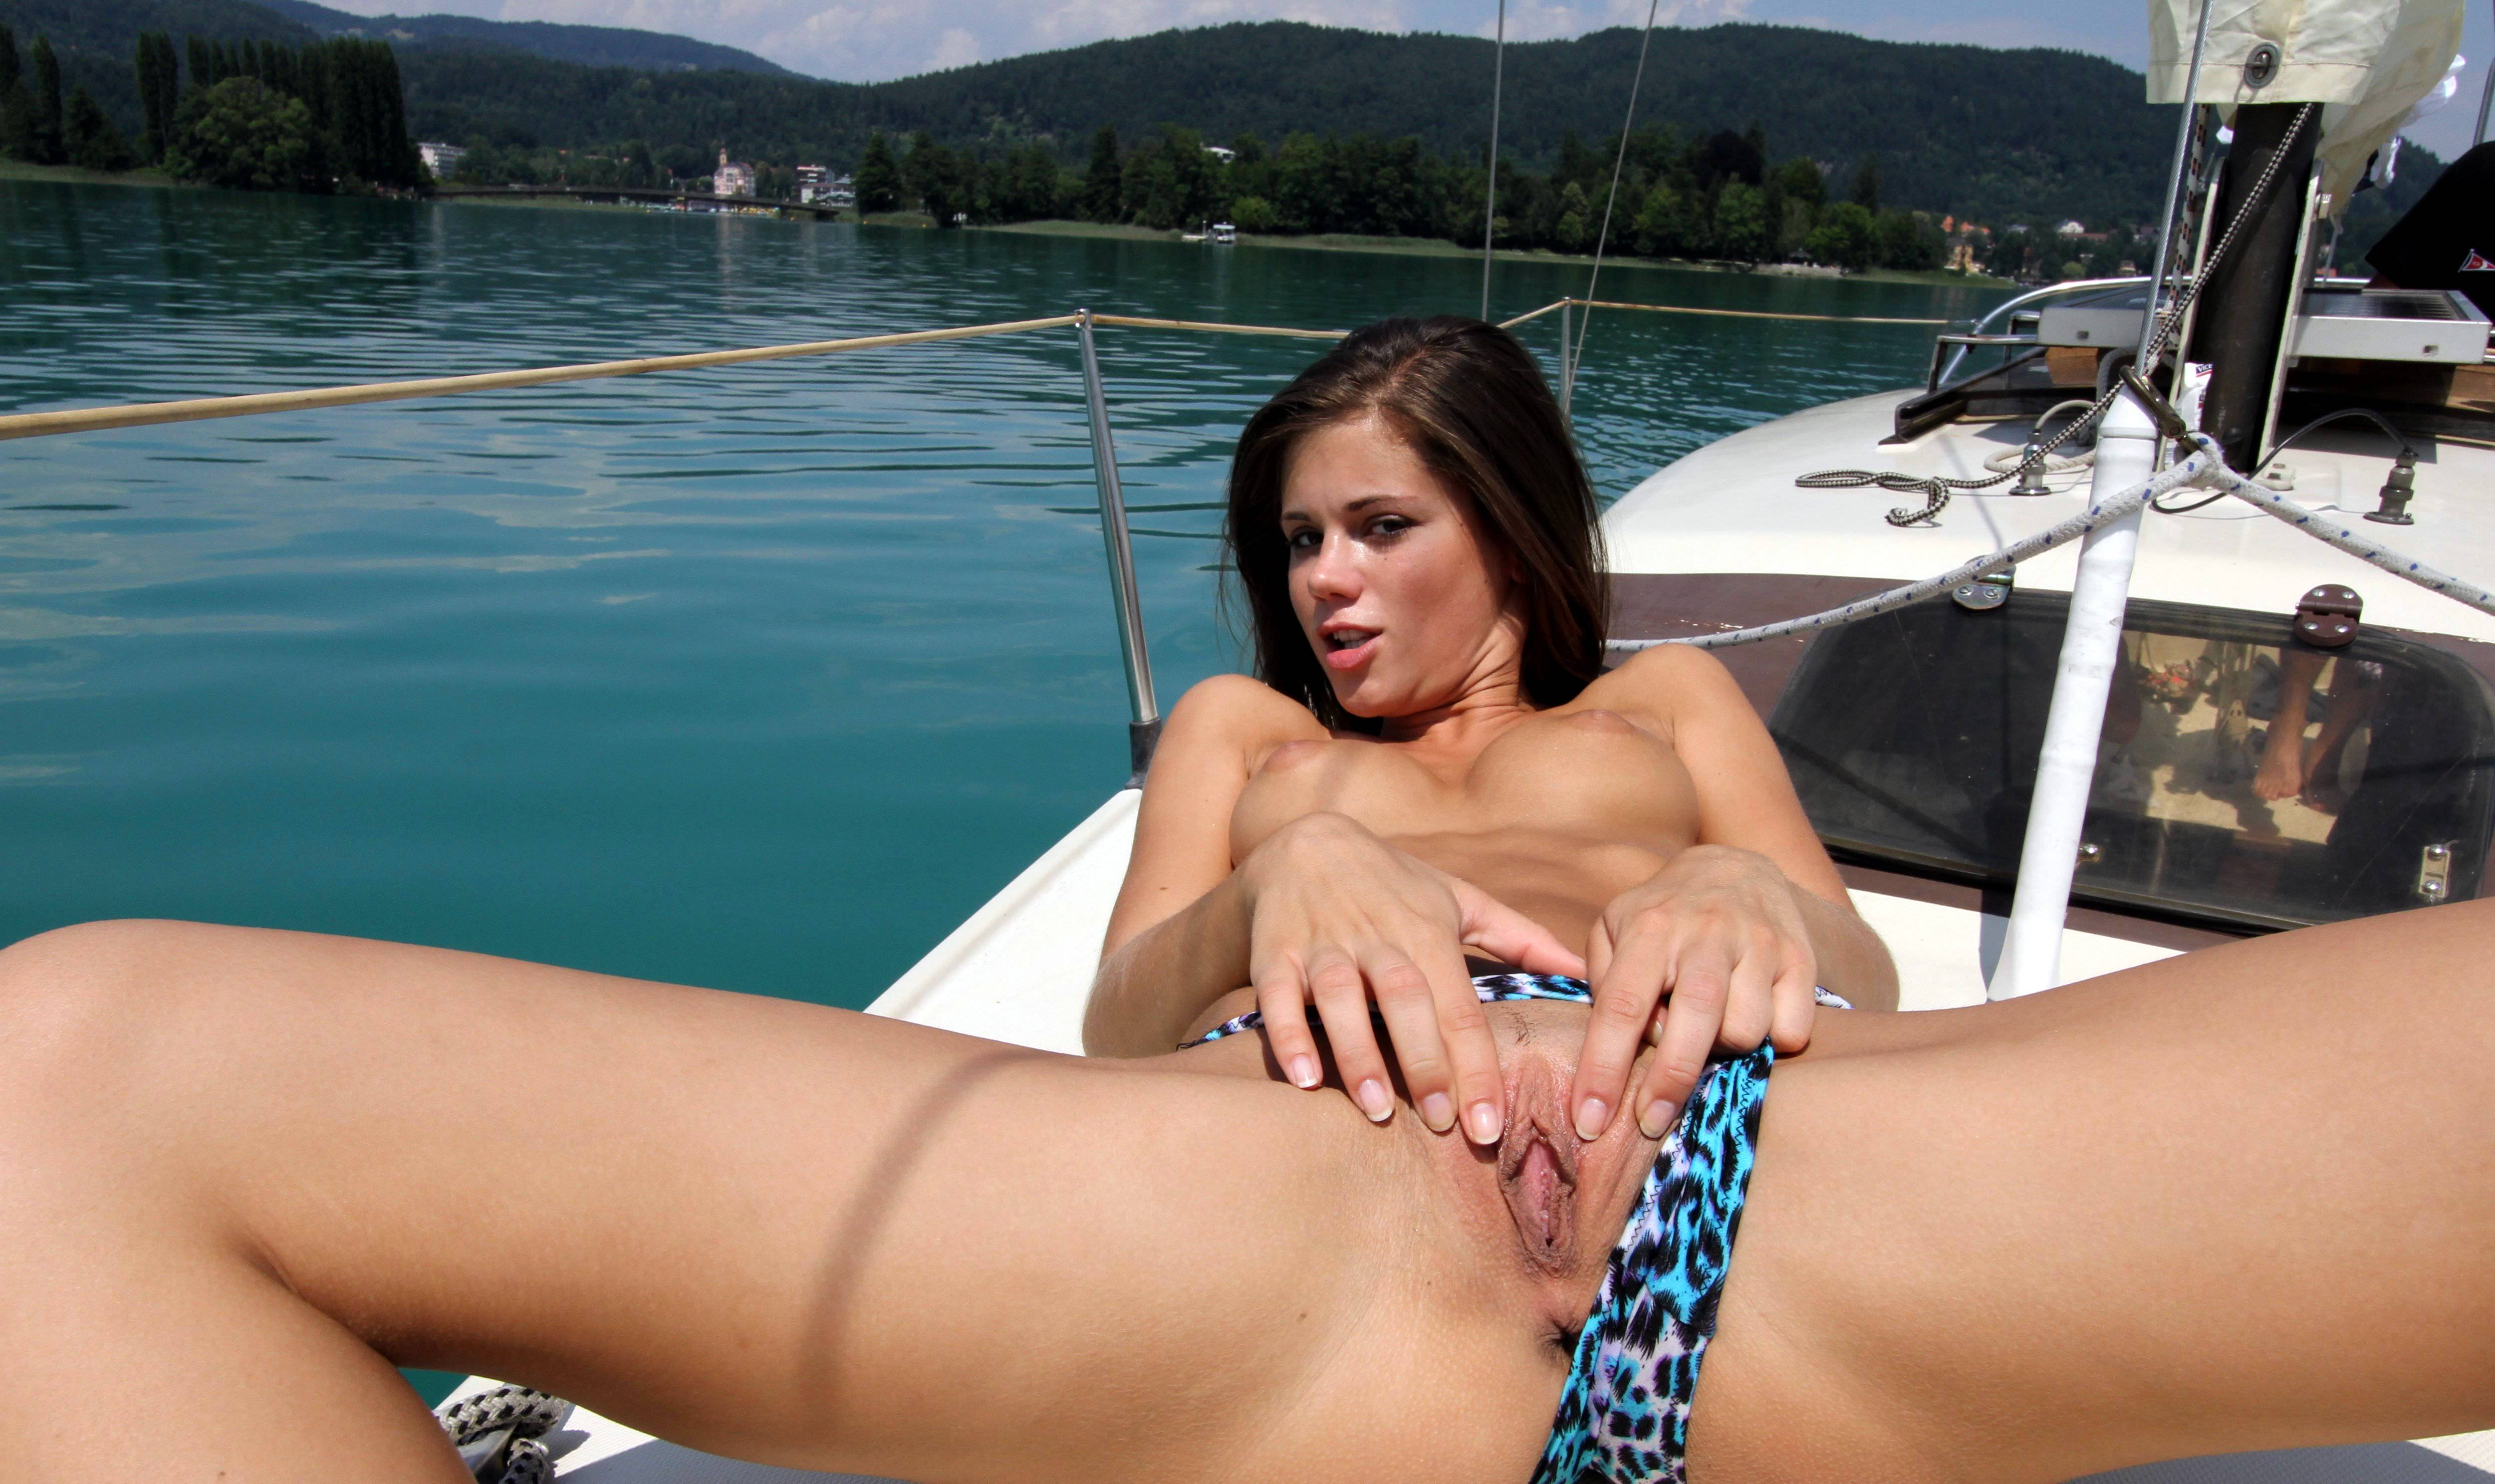 Think, nude girl on the boat